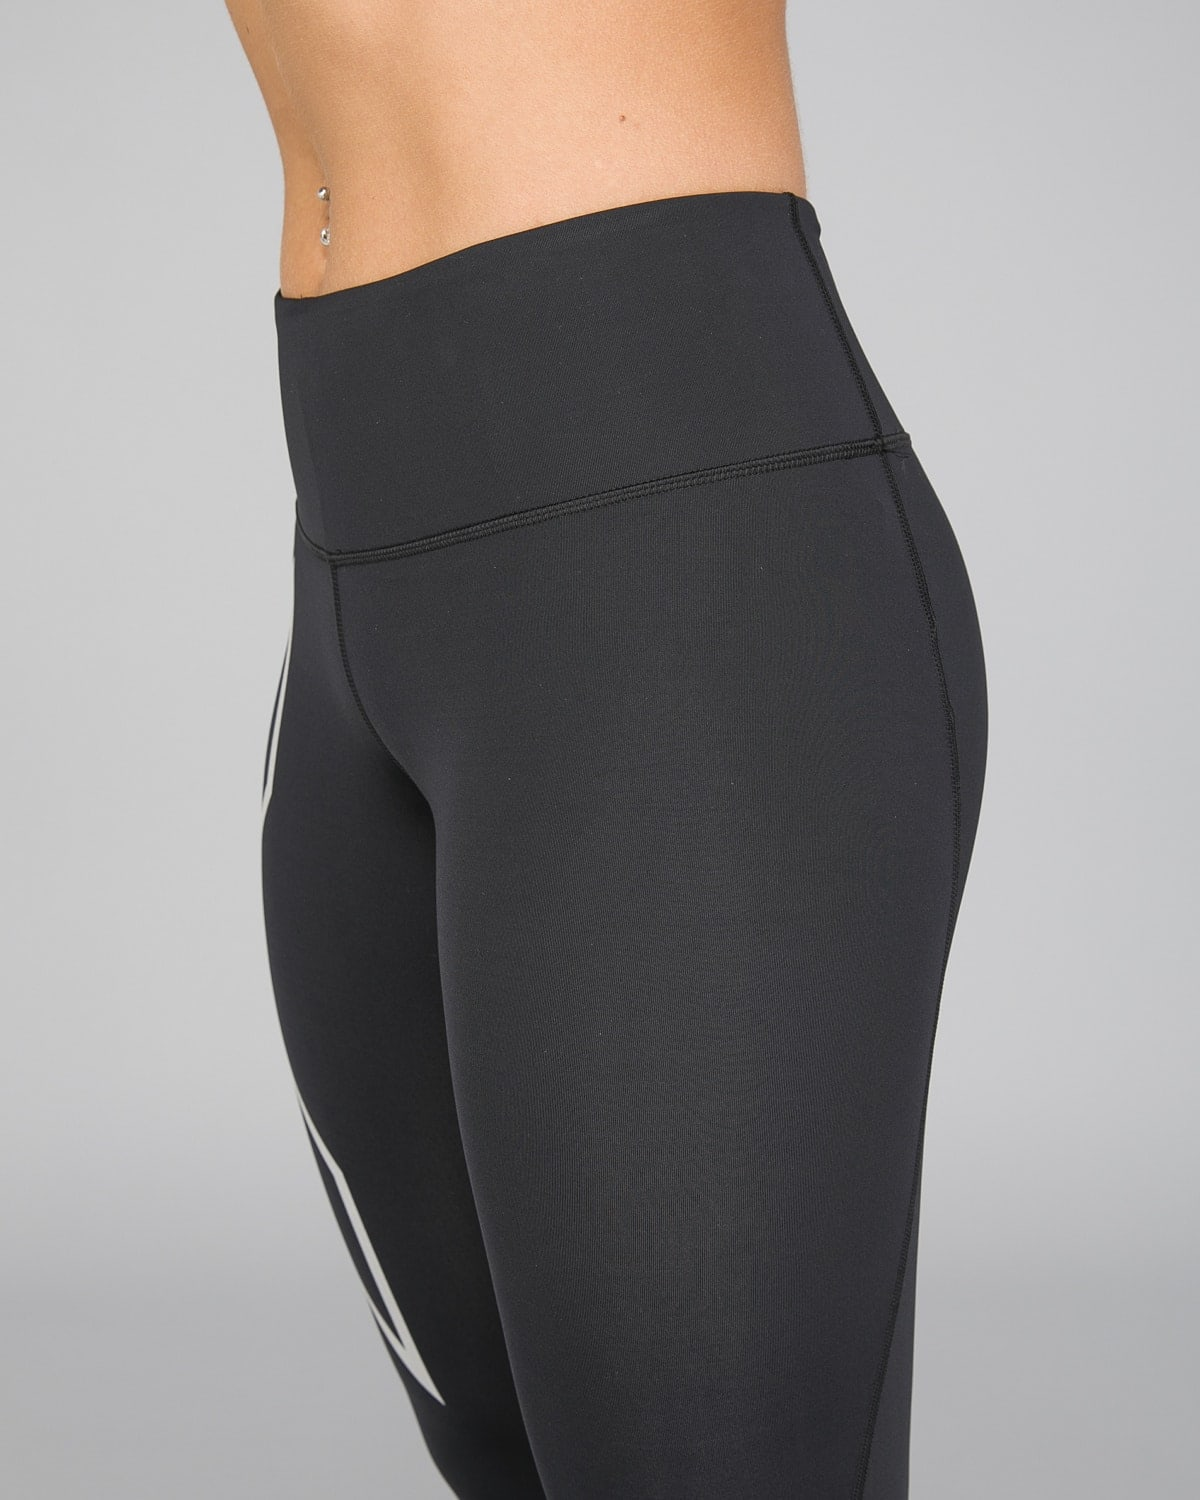 2XU Run Mid-Rise Dash Comp Tights Women – Black:Silver Reflective6